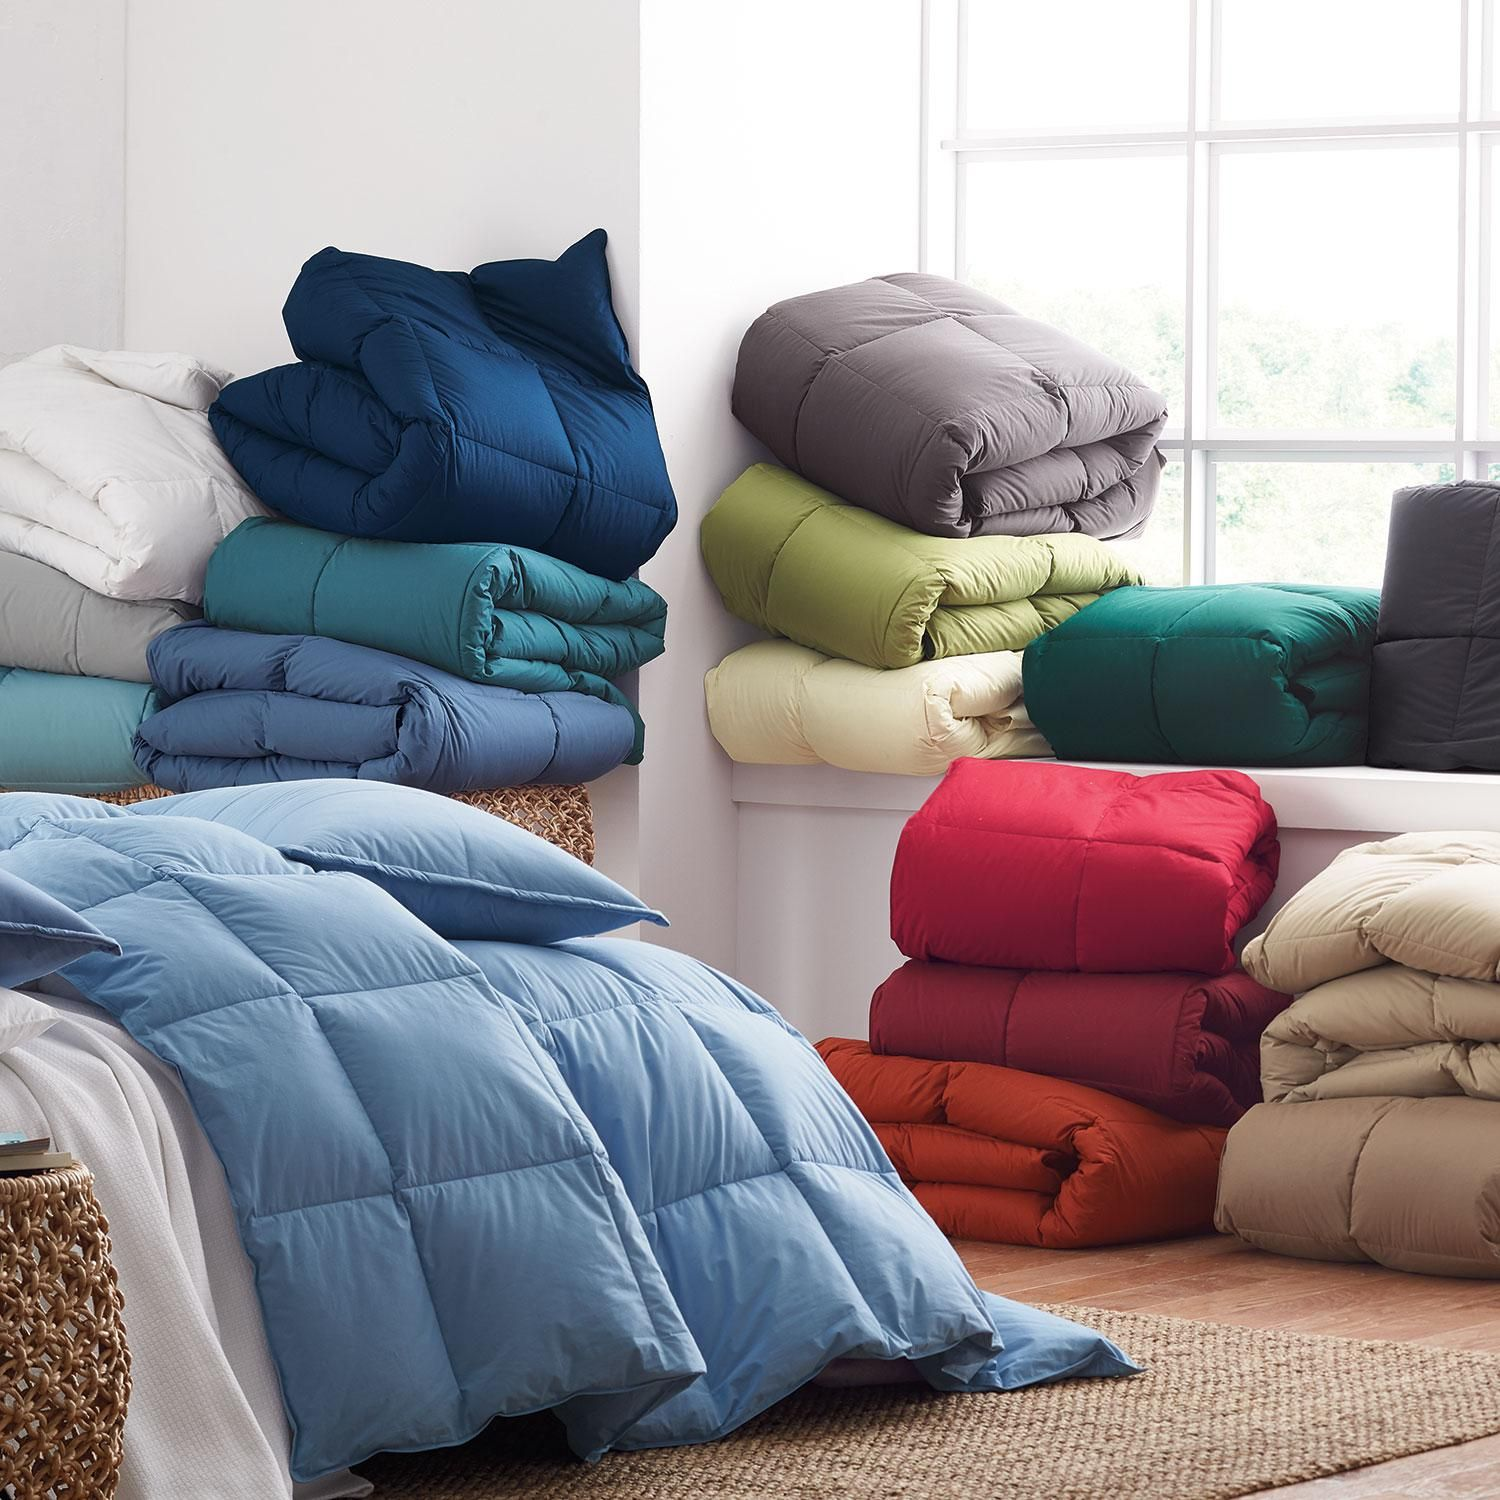 Lacrosse Extra Warmth Primaloft Comforter King The Company